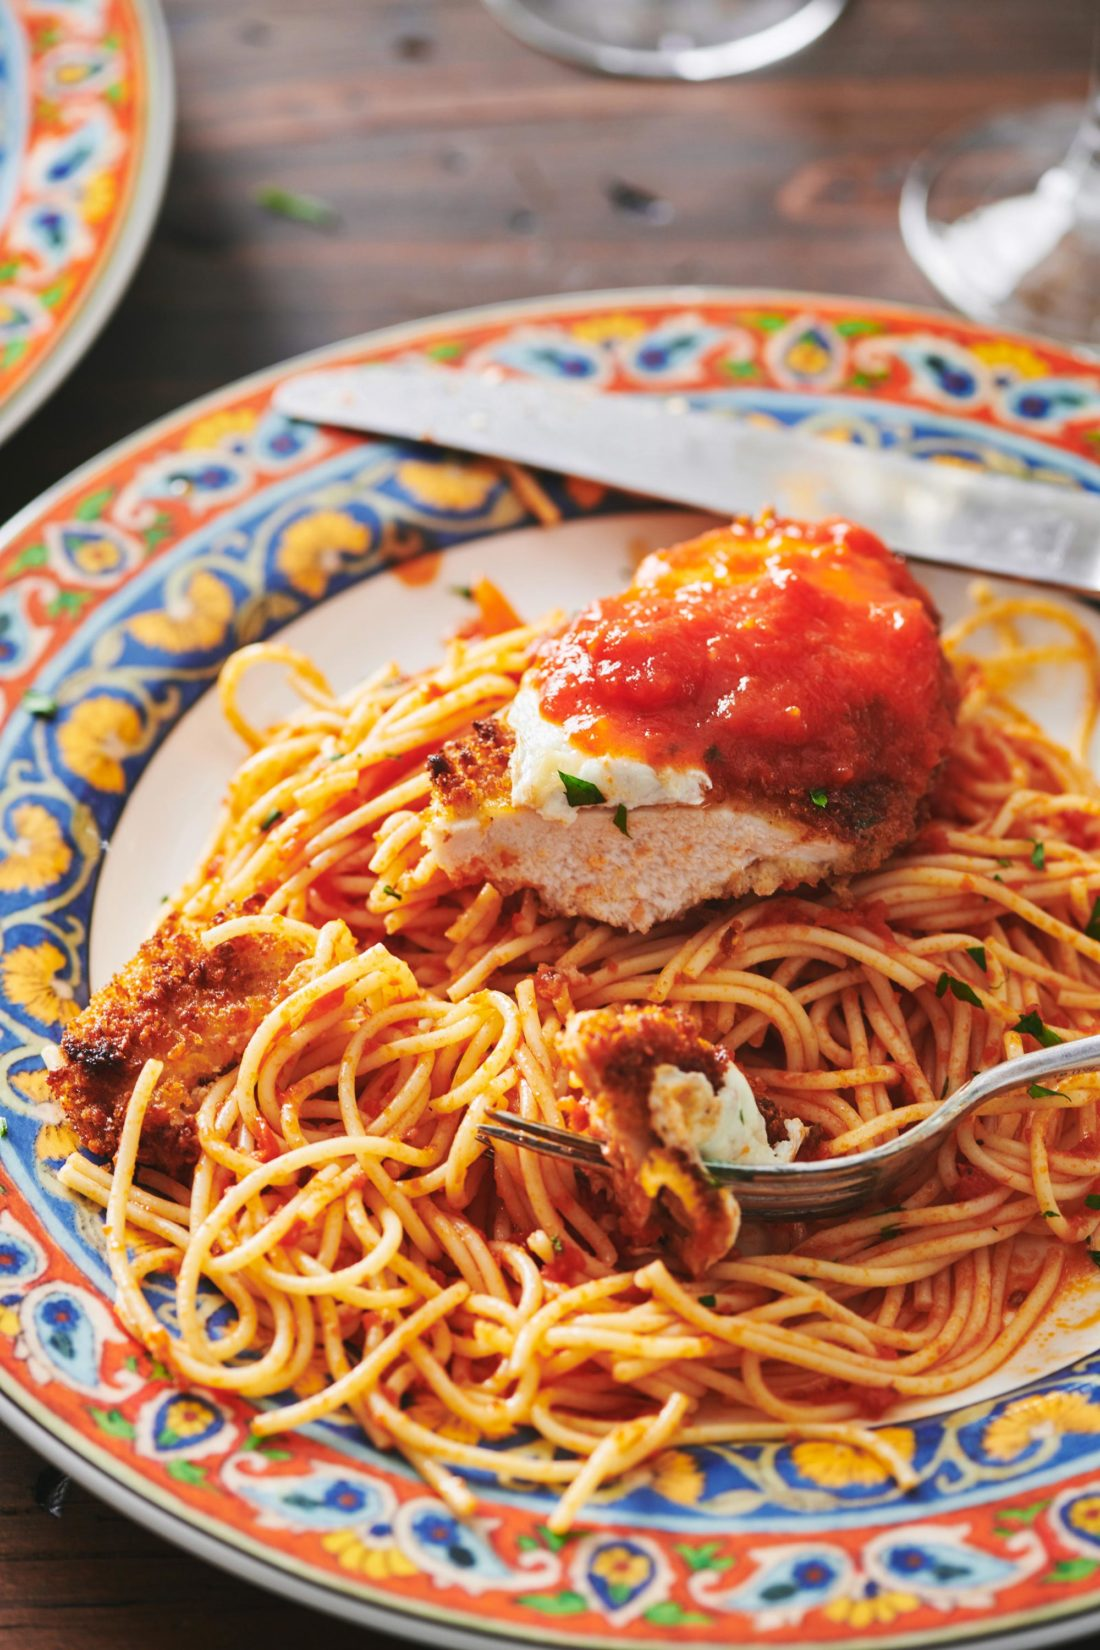 Chicken Parmigiana on a plate with spaghetti